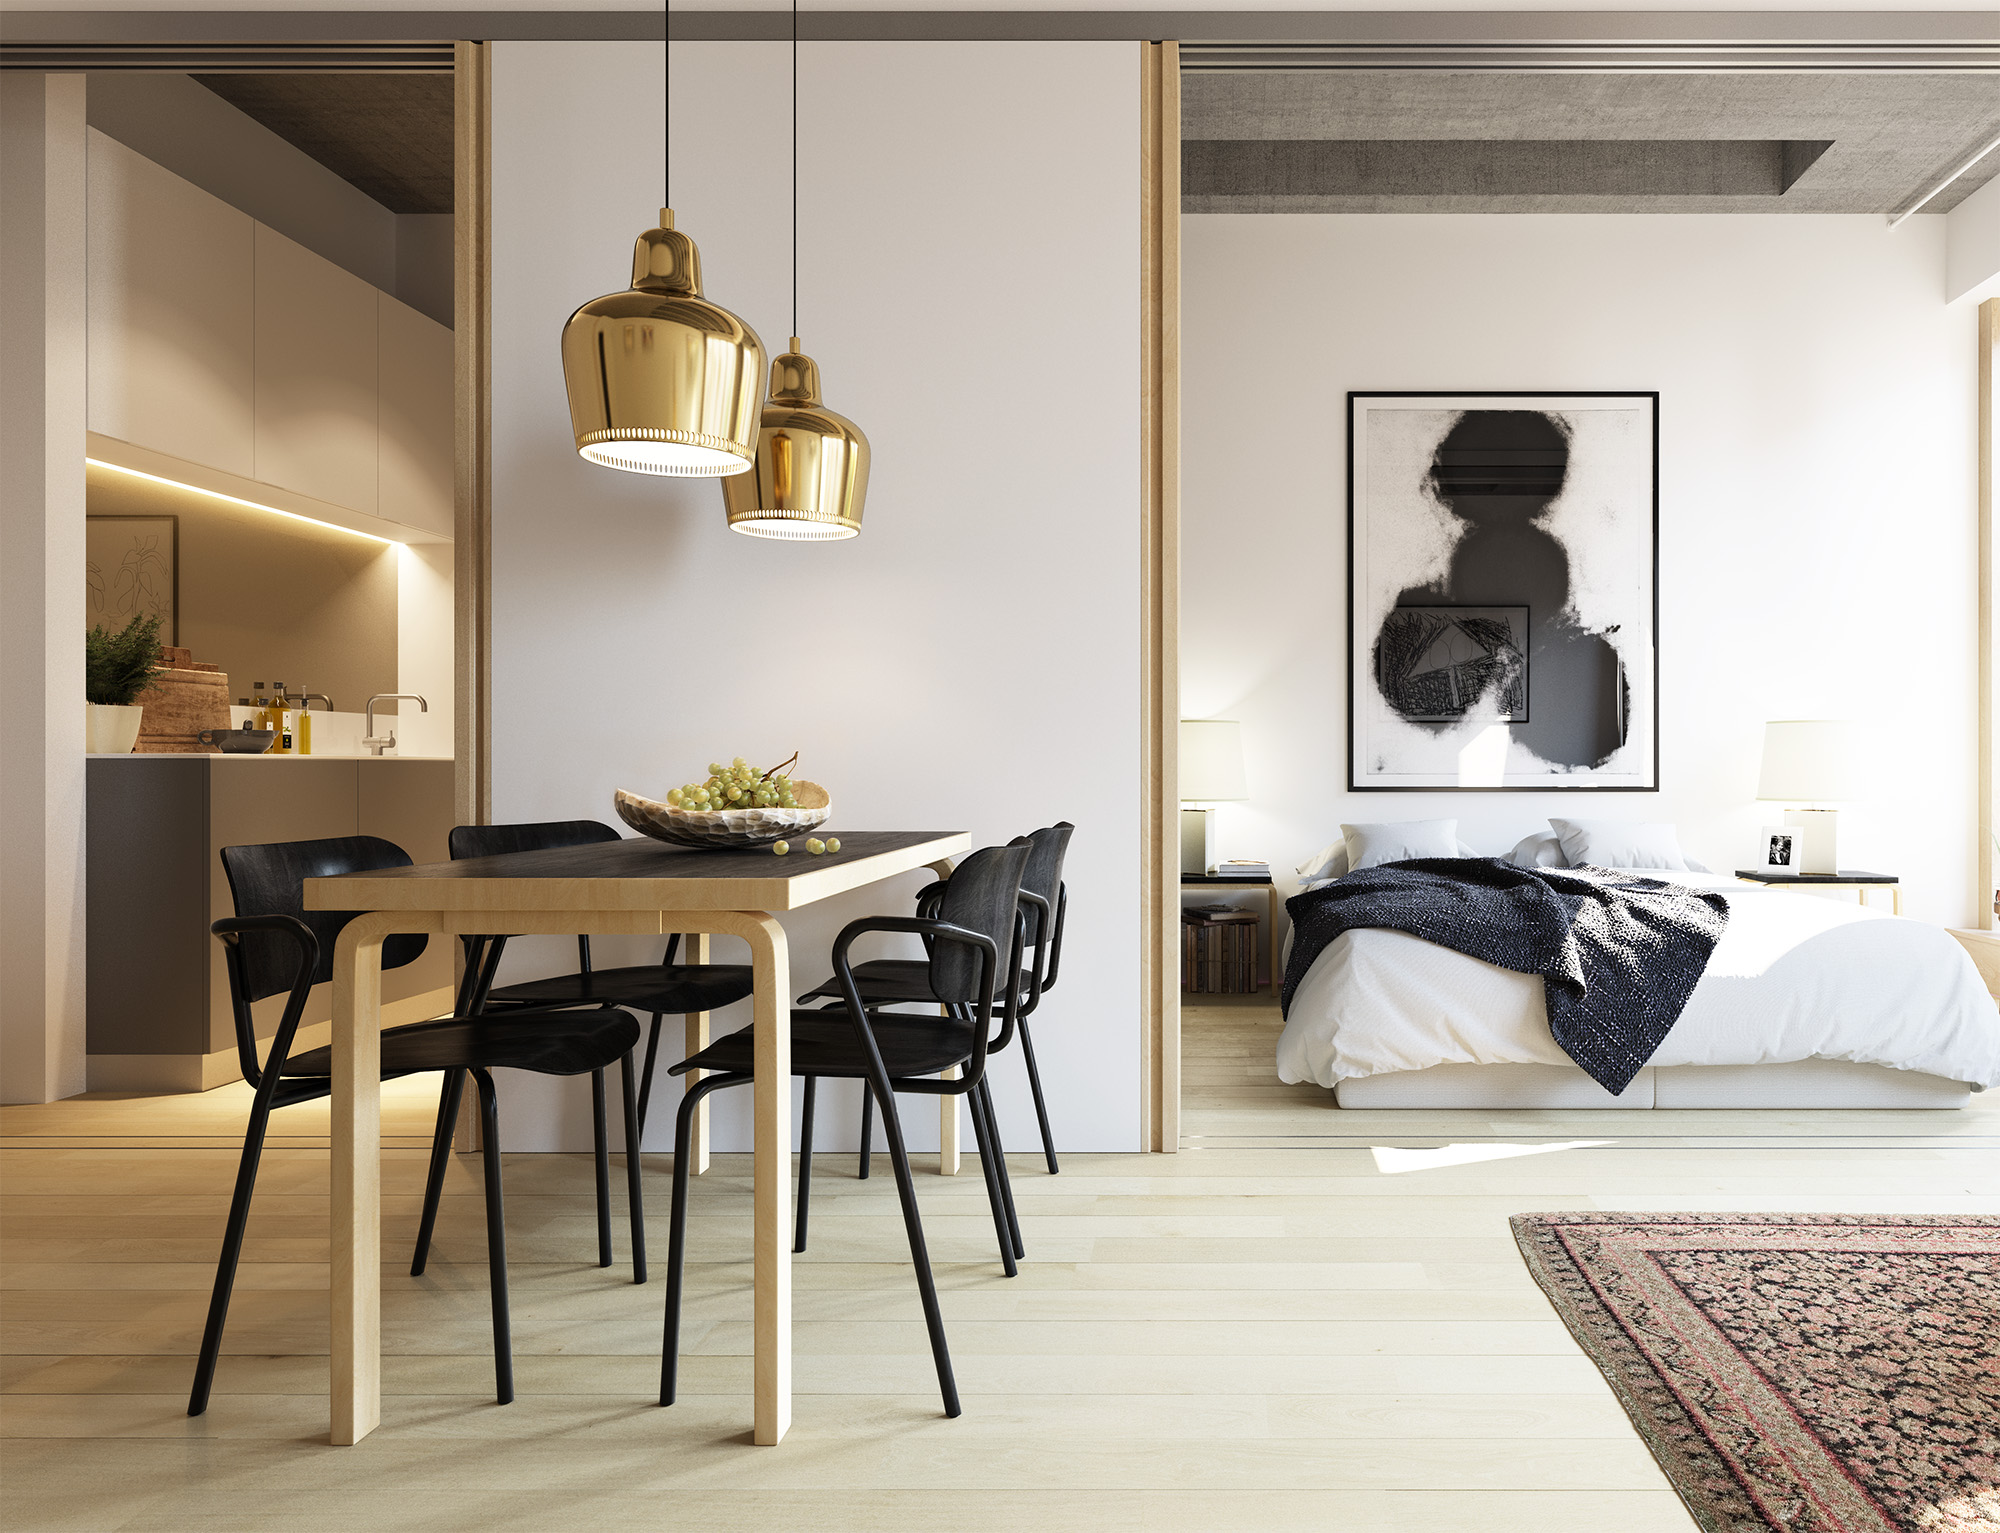 recent_spaces_pied_a_terre_01.jpg